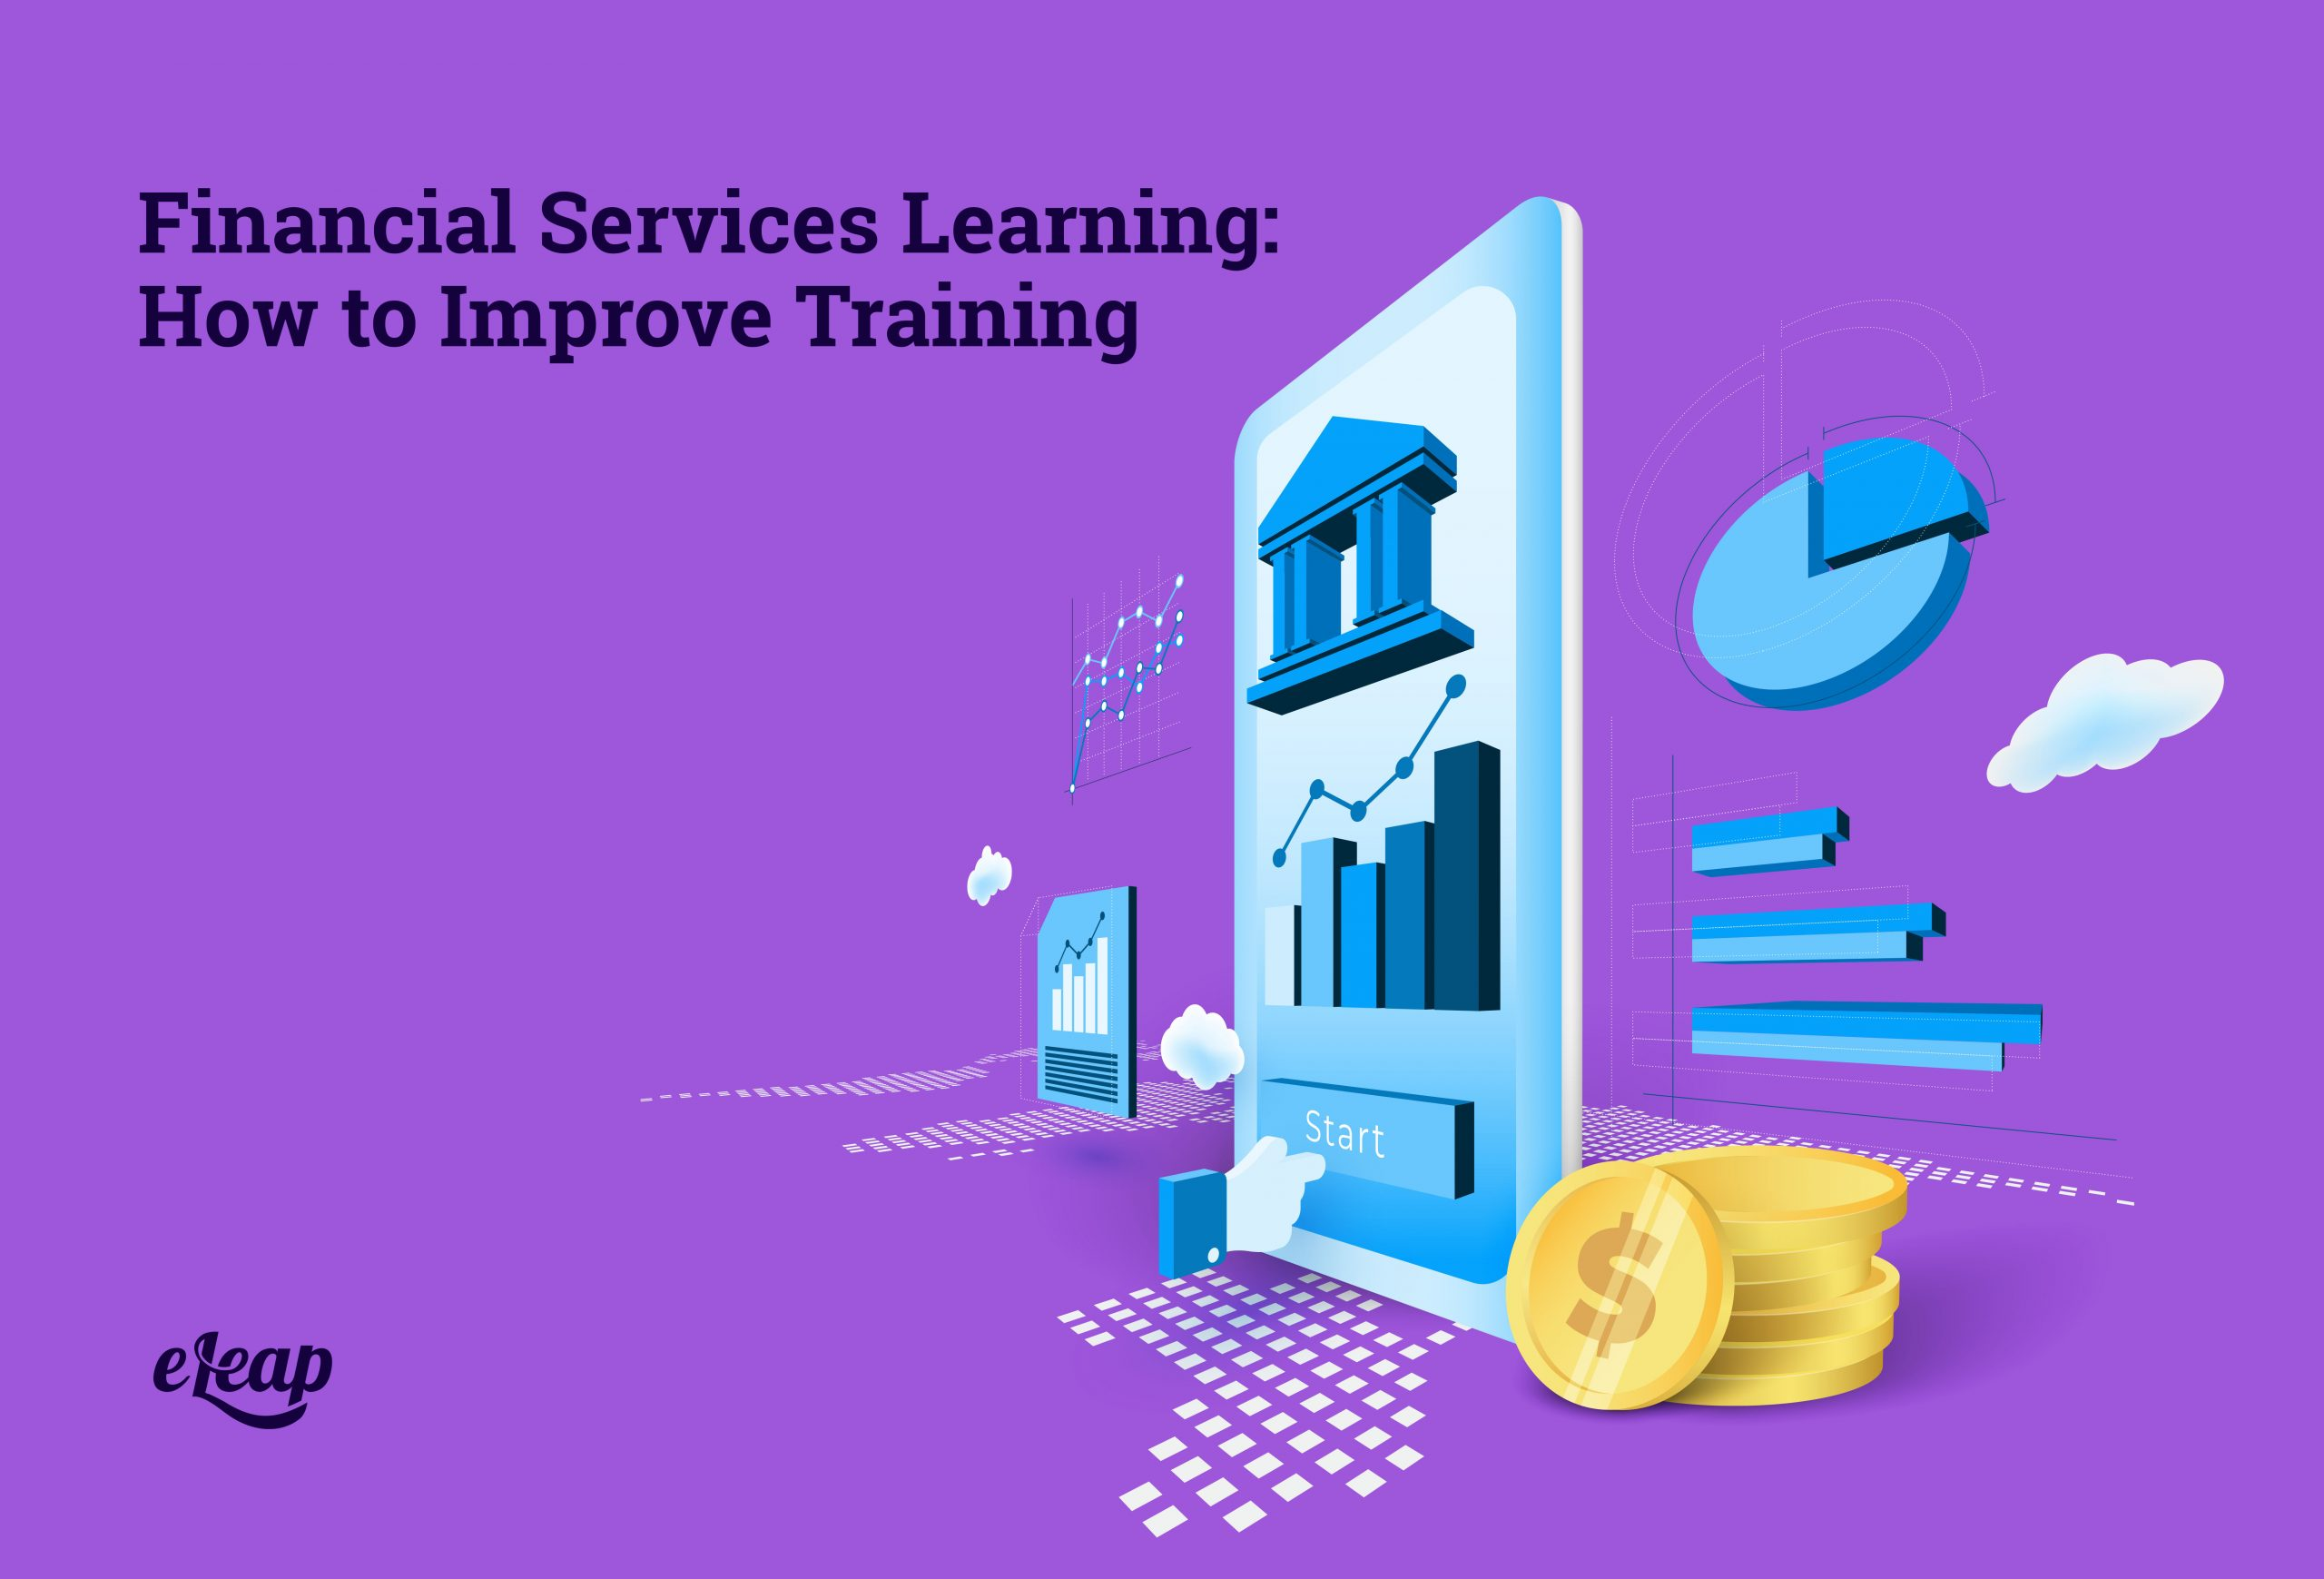 Financial Services Learning: How to Improve Training